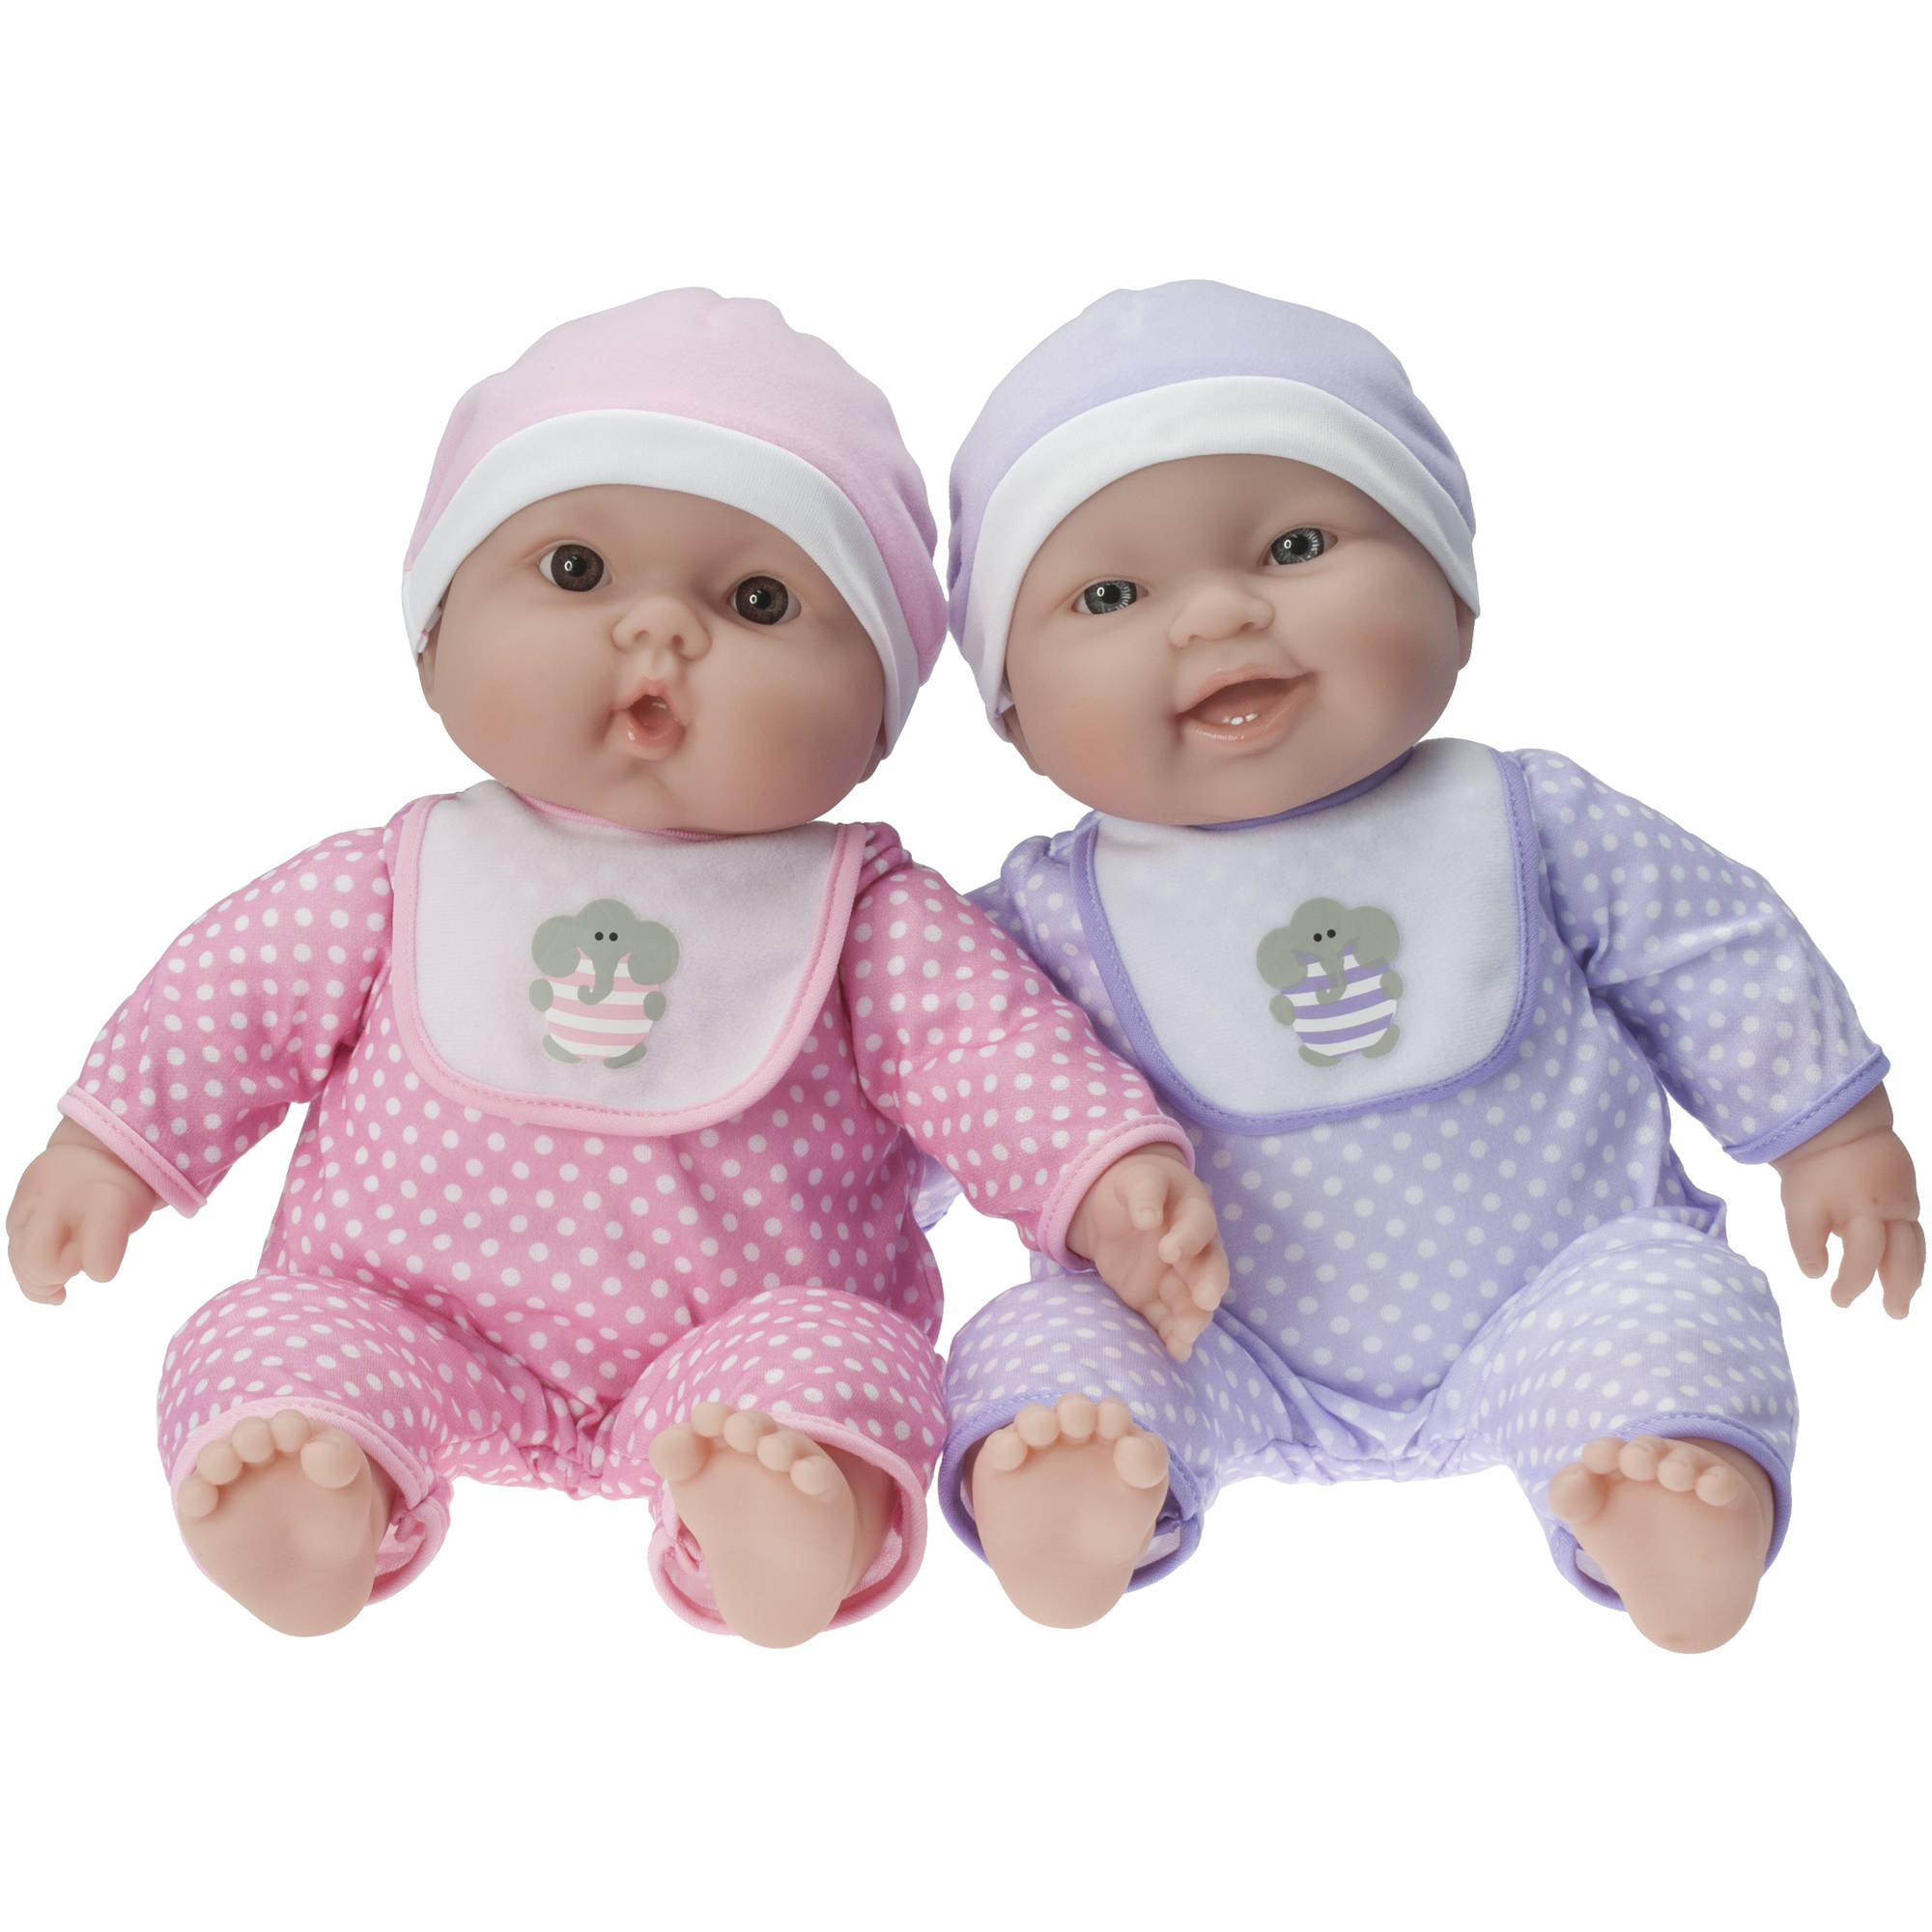 Baby Boy Toys Walmart : Dolls pictures images graphics for facebook whatsapp